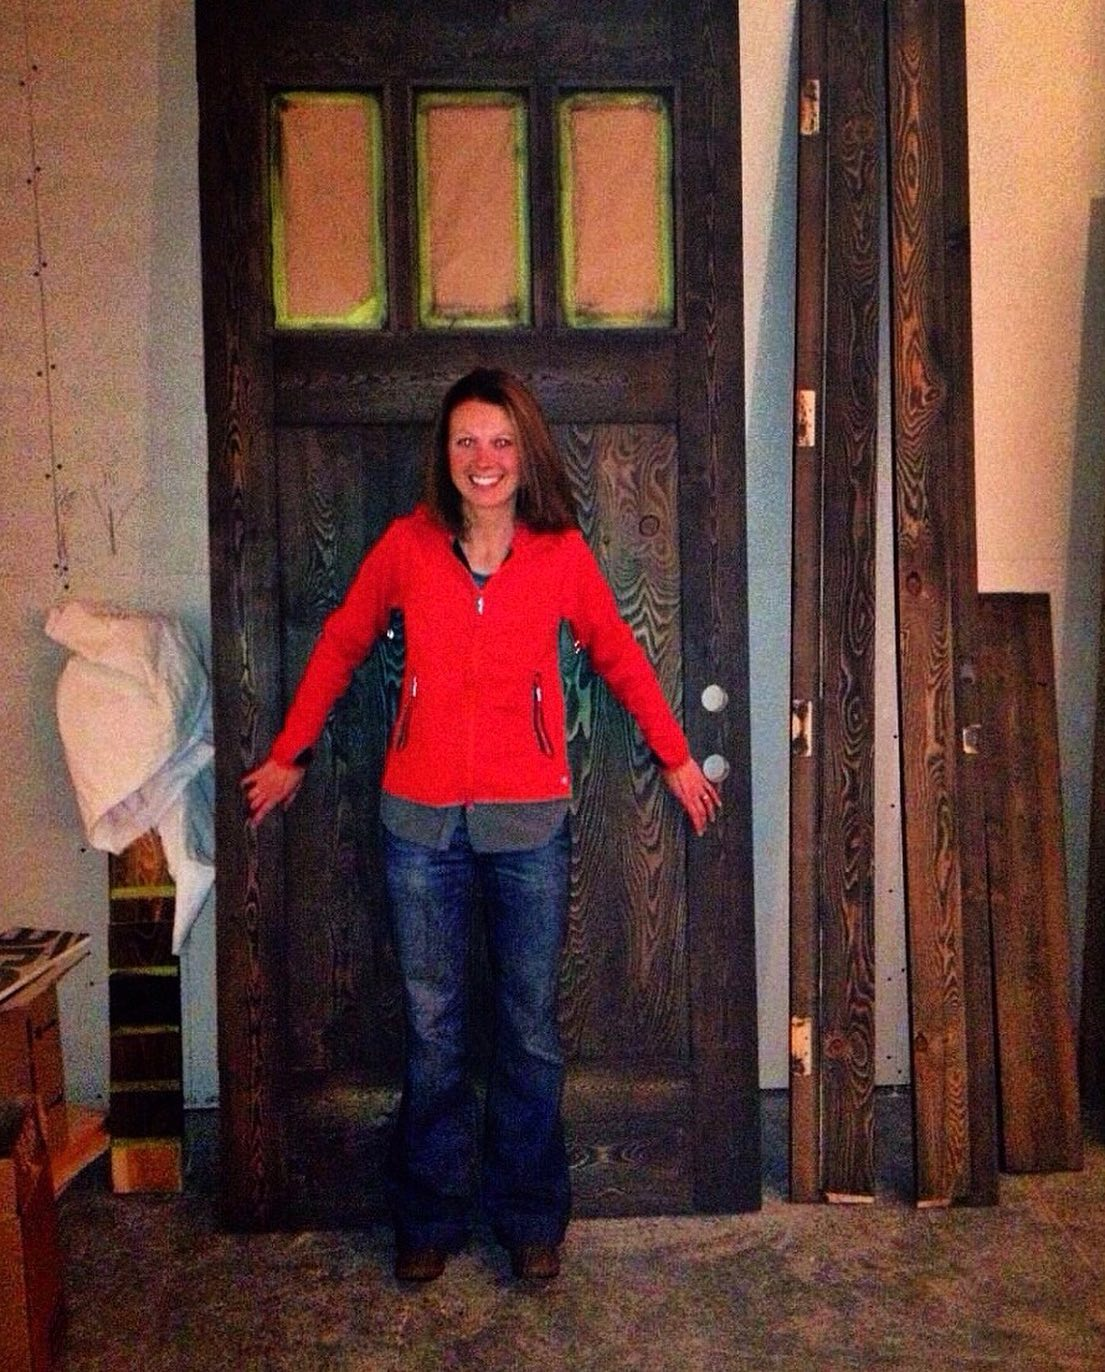 And exactly 5 years ago today I got the entry door for the Lookout (and it's been slammed at least a thousand times since) whitefish custom home builder